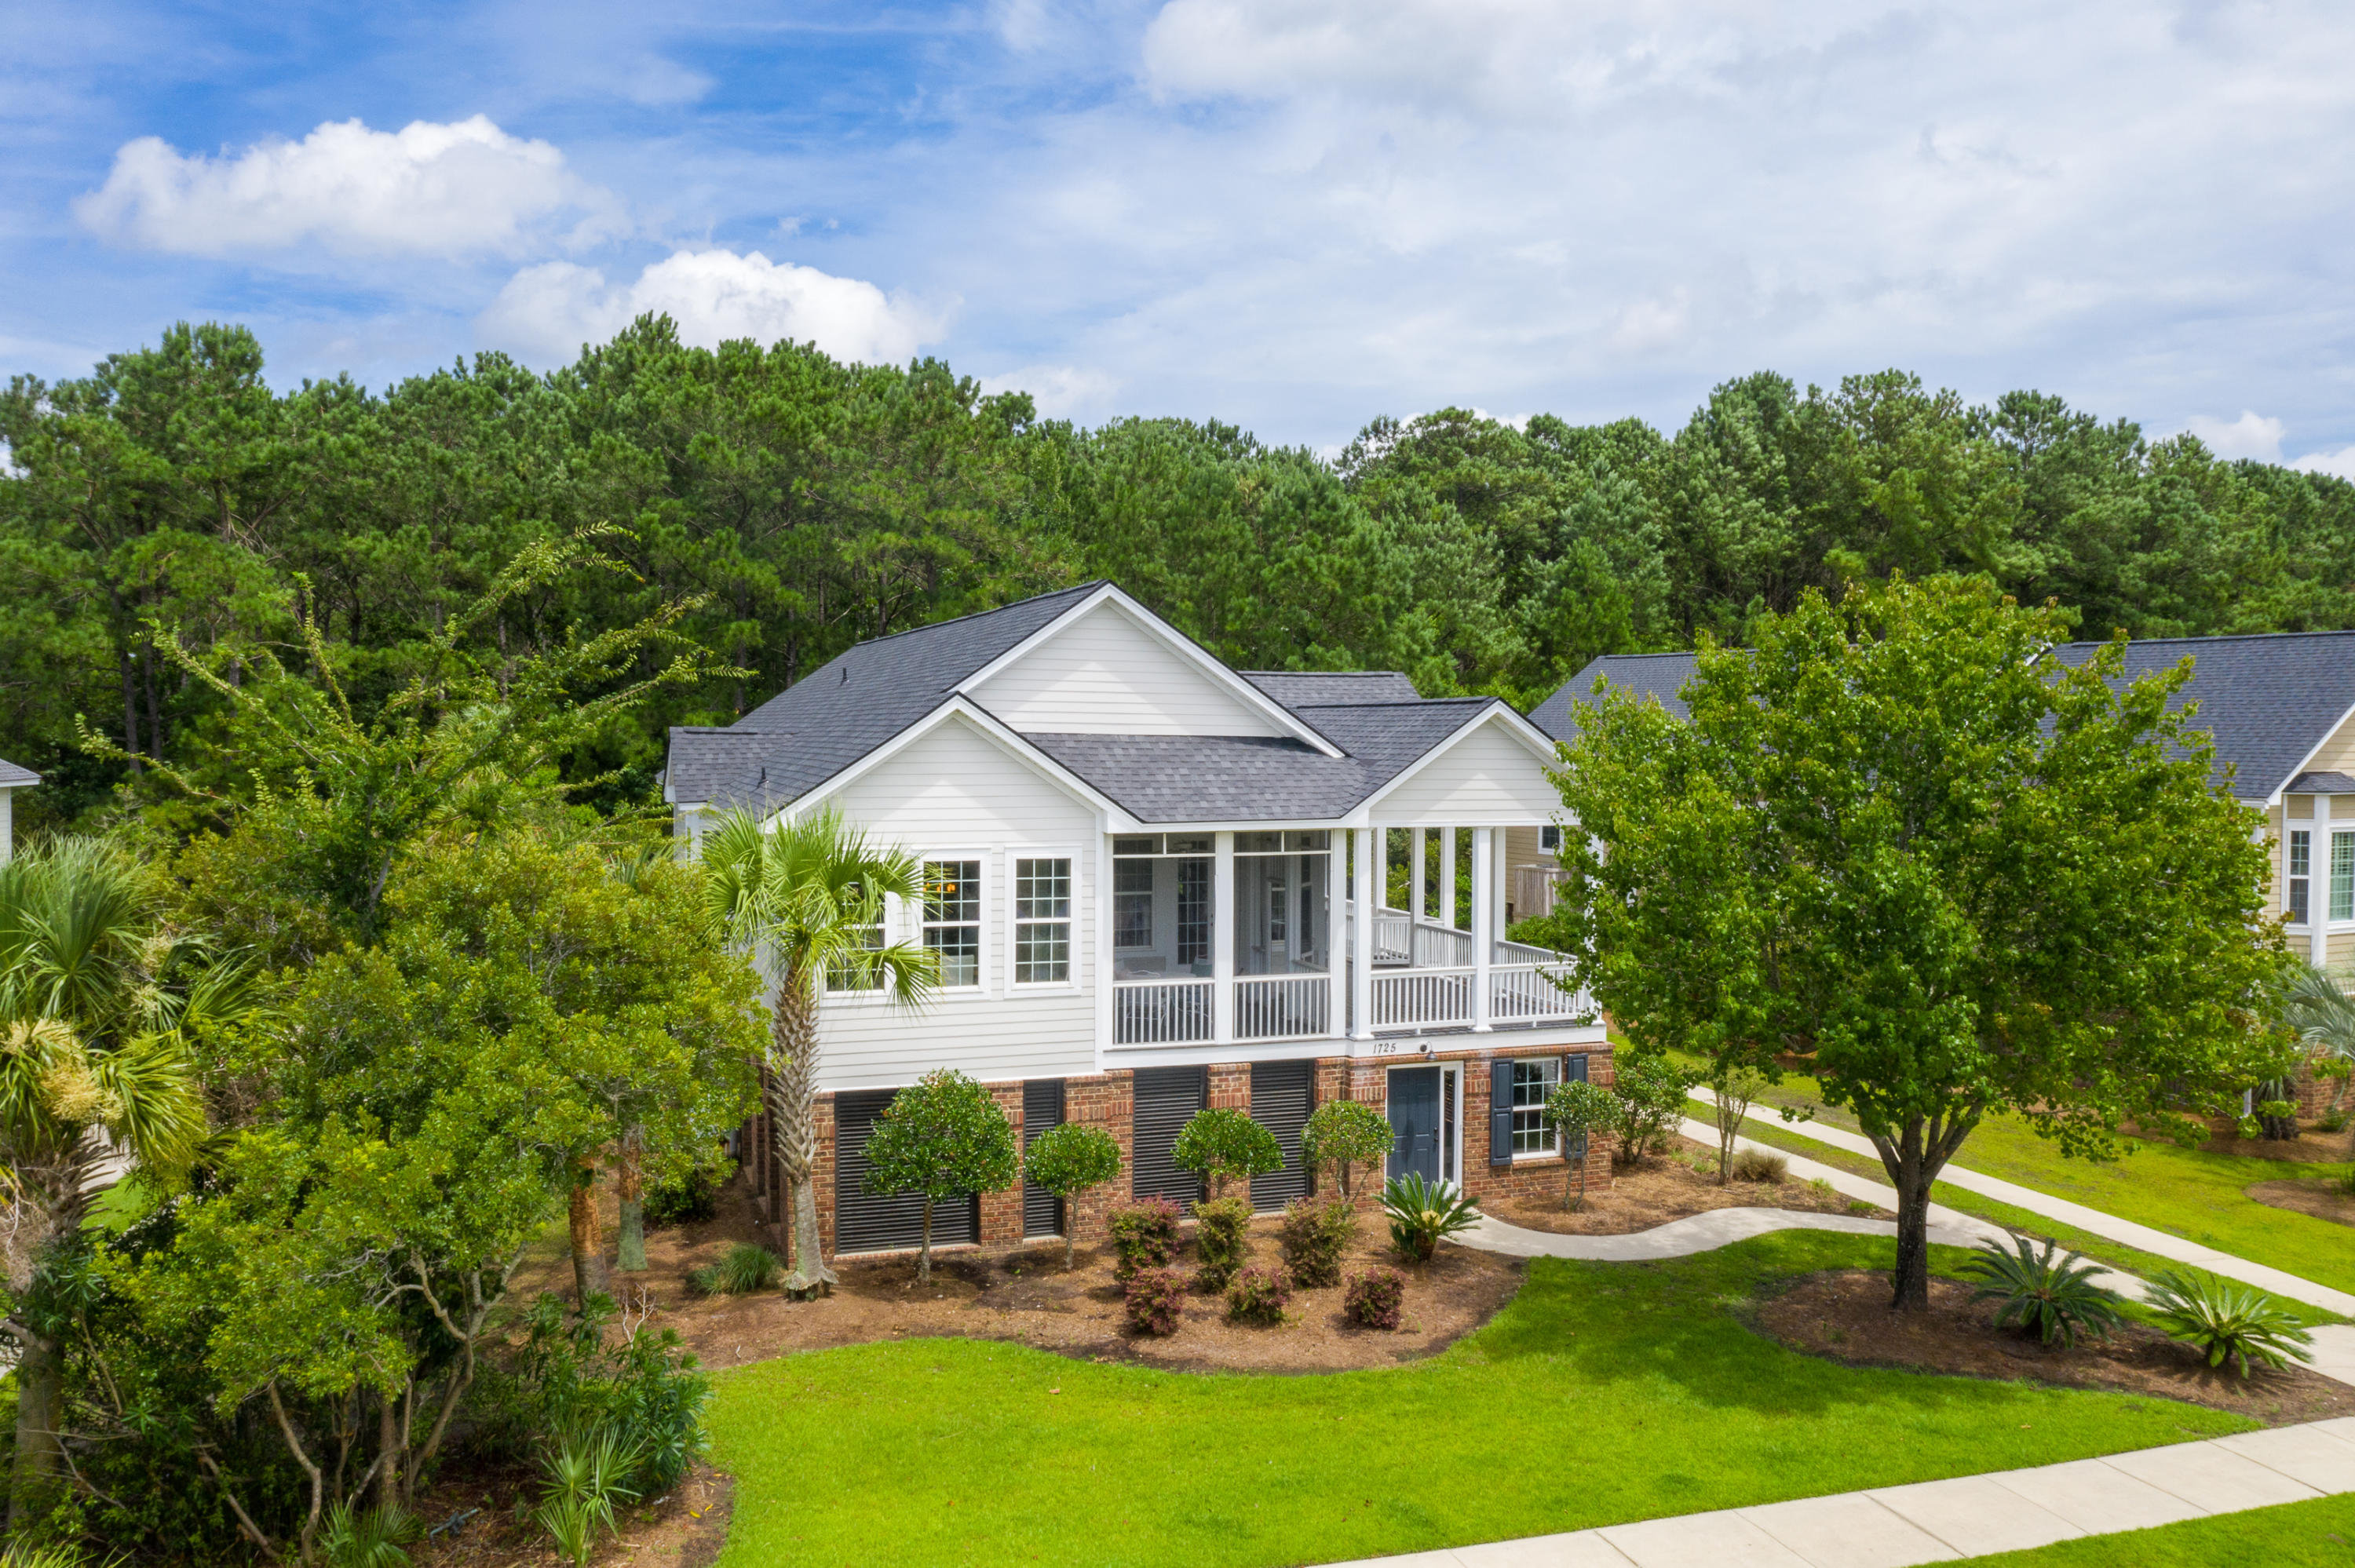 Rivertowne Country Club Homes For Sale - 1725 Rivertowne Country Club, Mount Pleasant, SC - 52